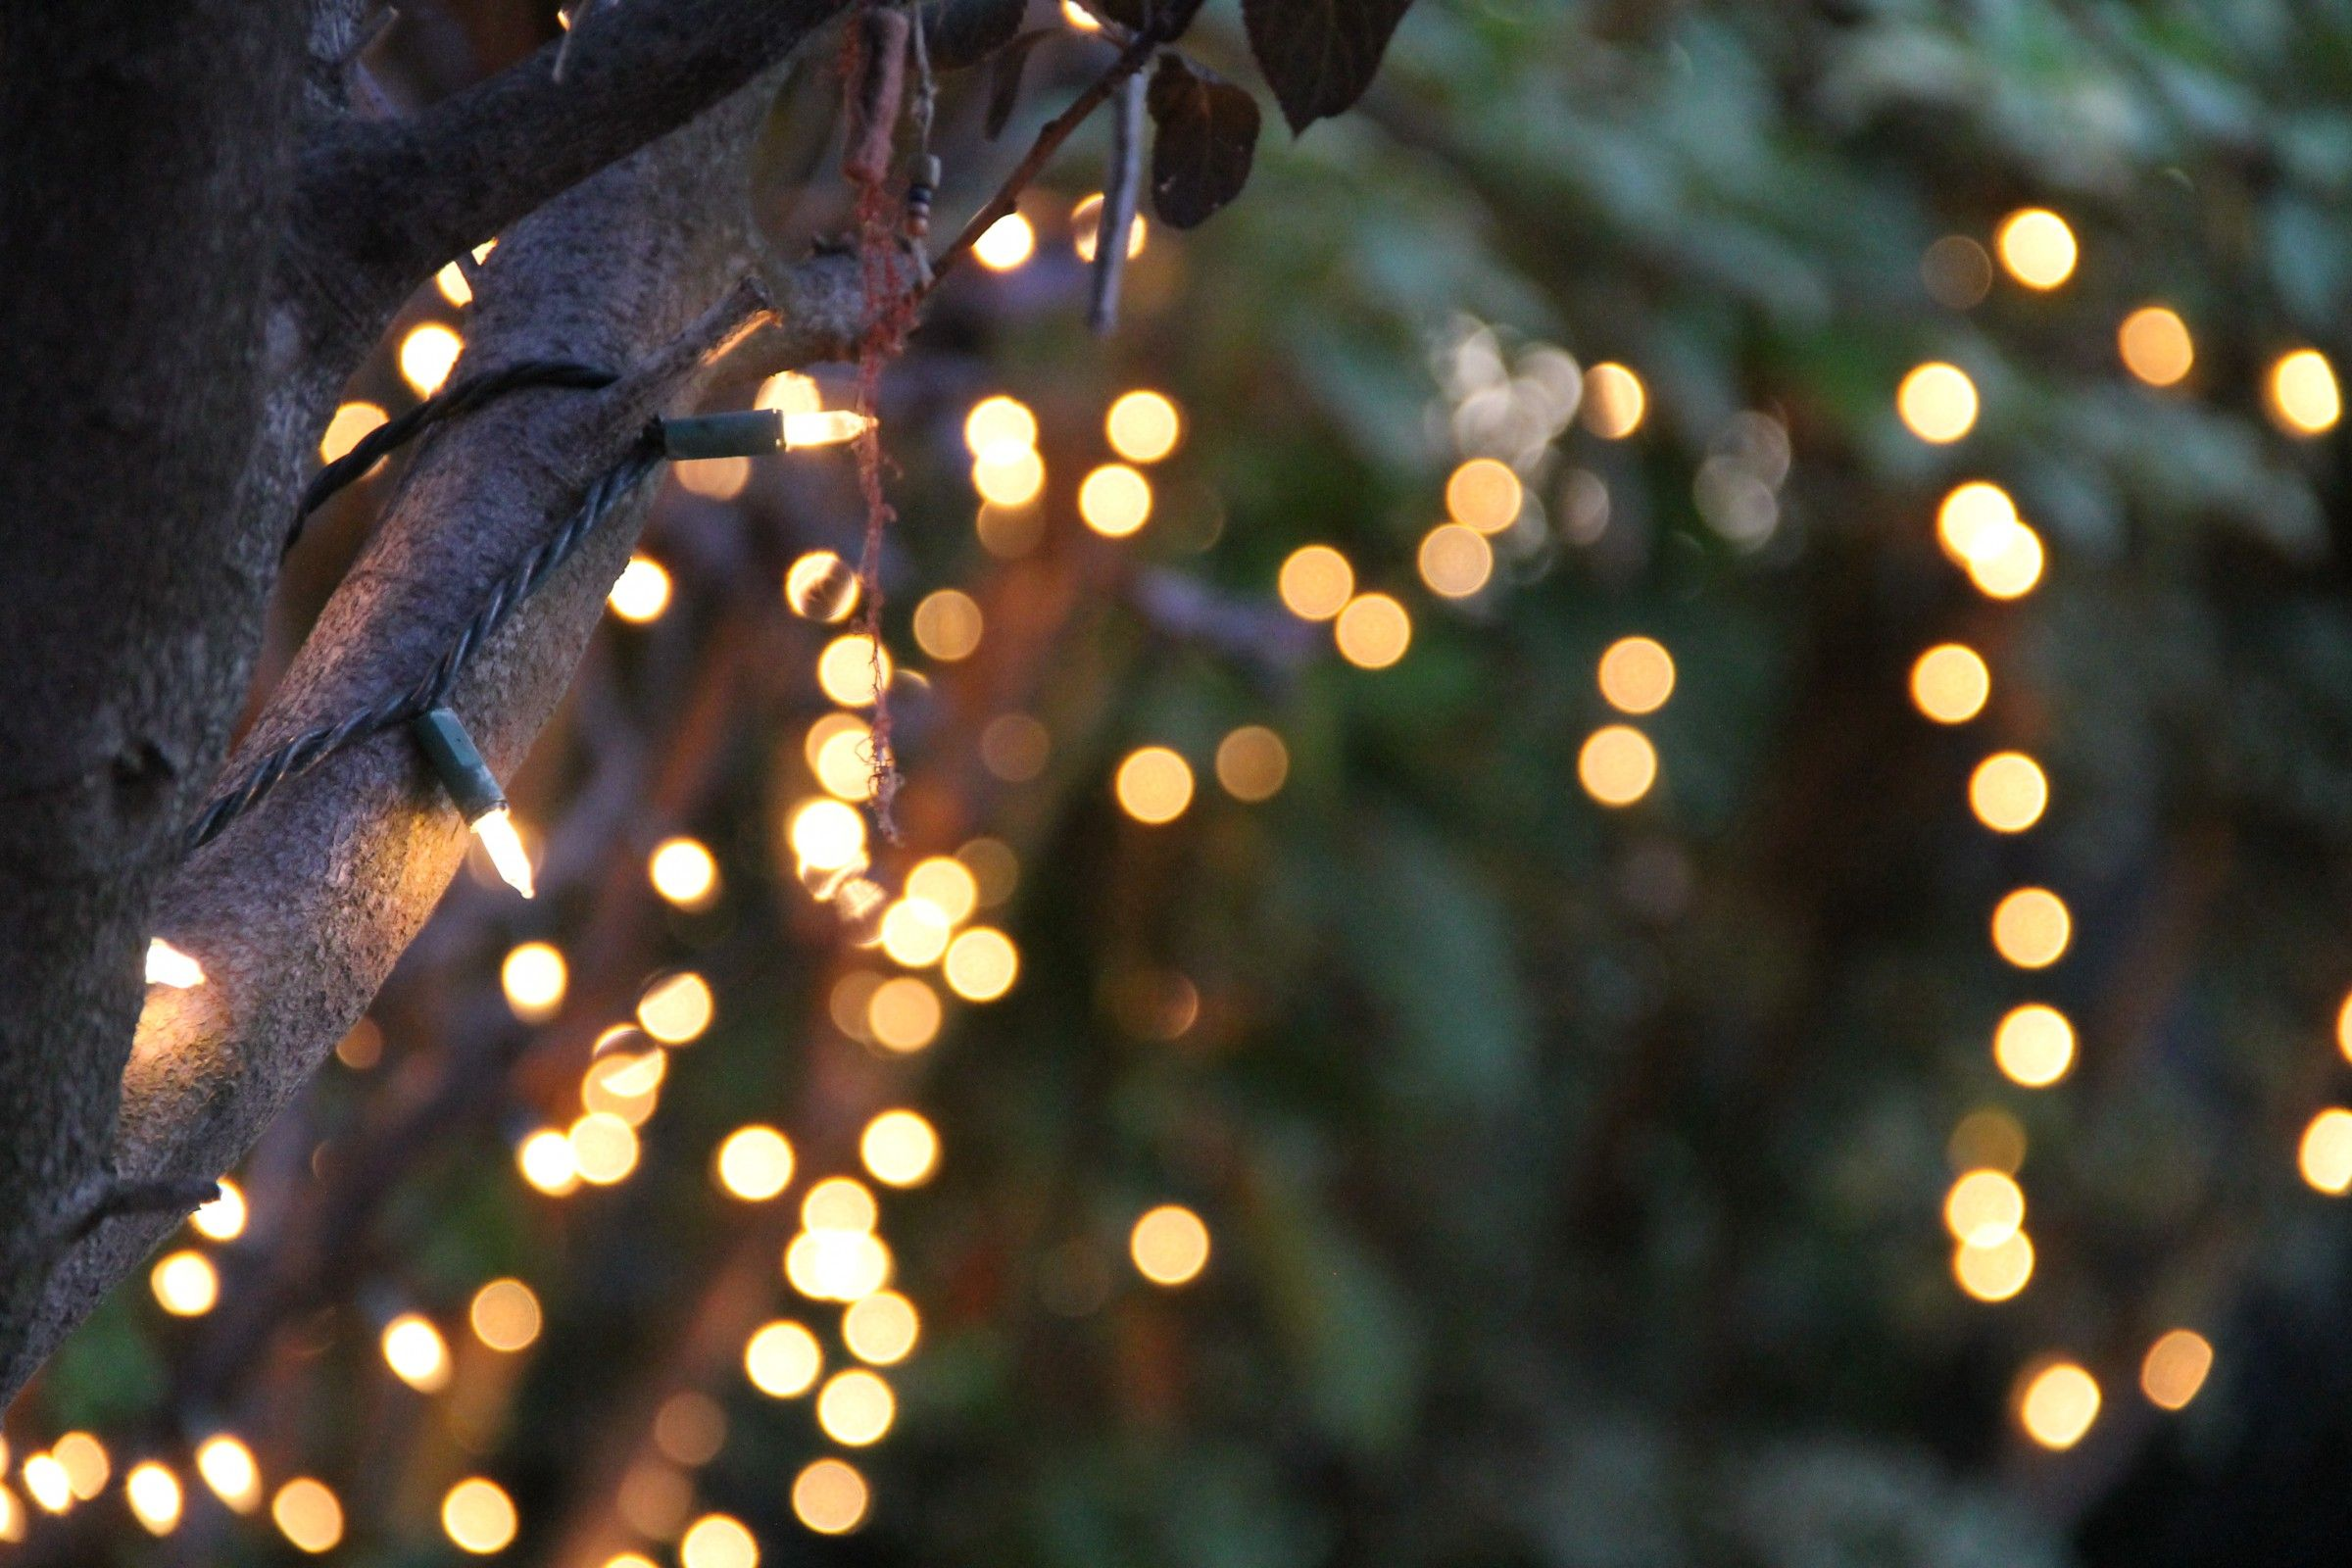 Outdoor hanging lights google search pococello mood board outdoor hanging lights google search aloadofball Choice Image